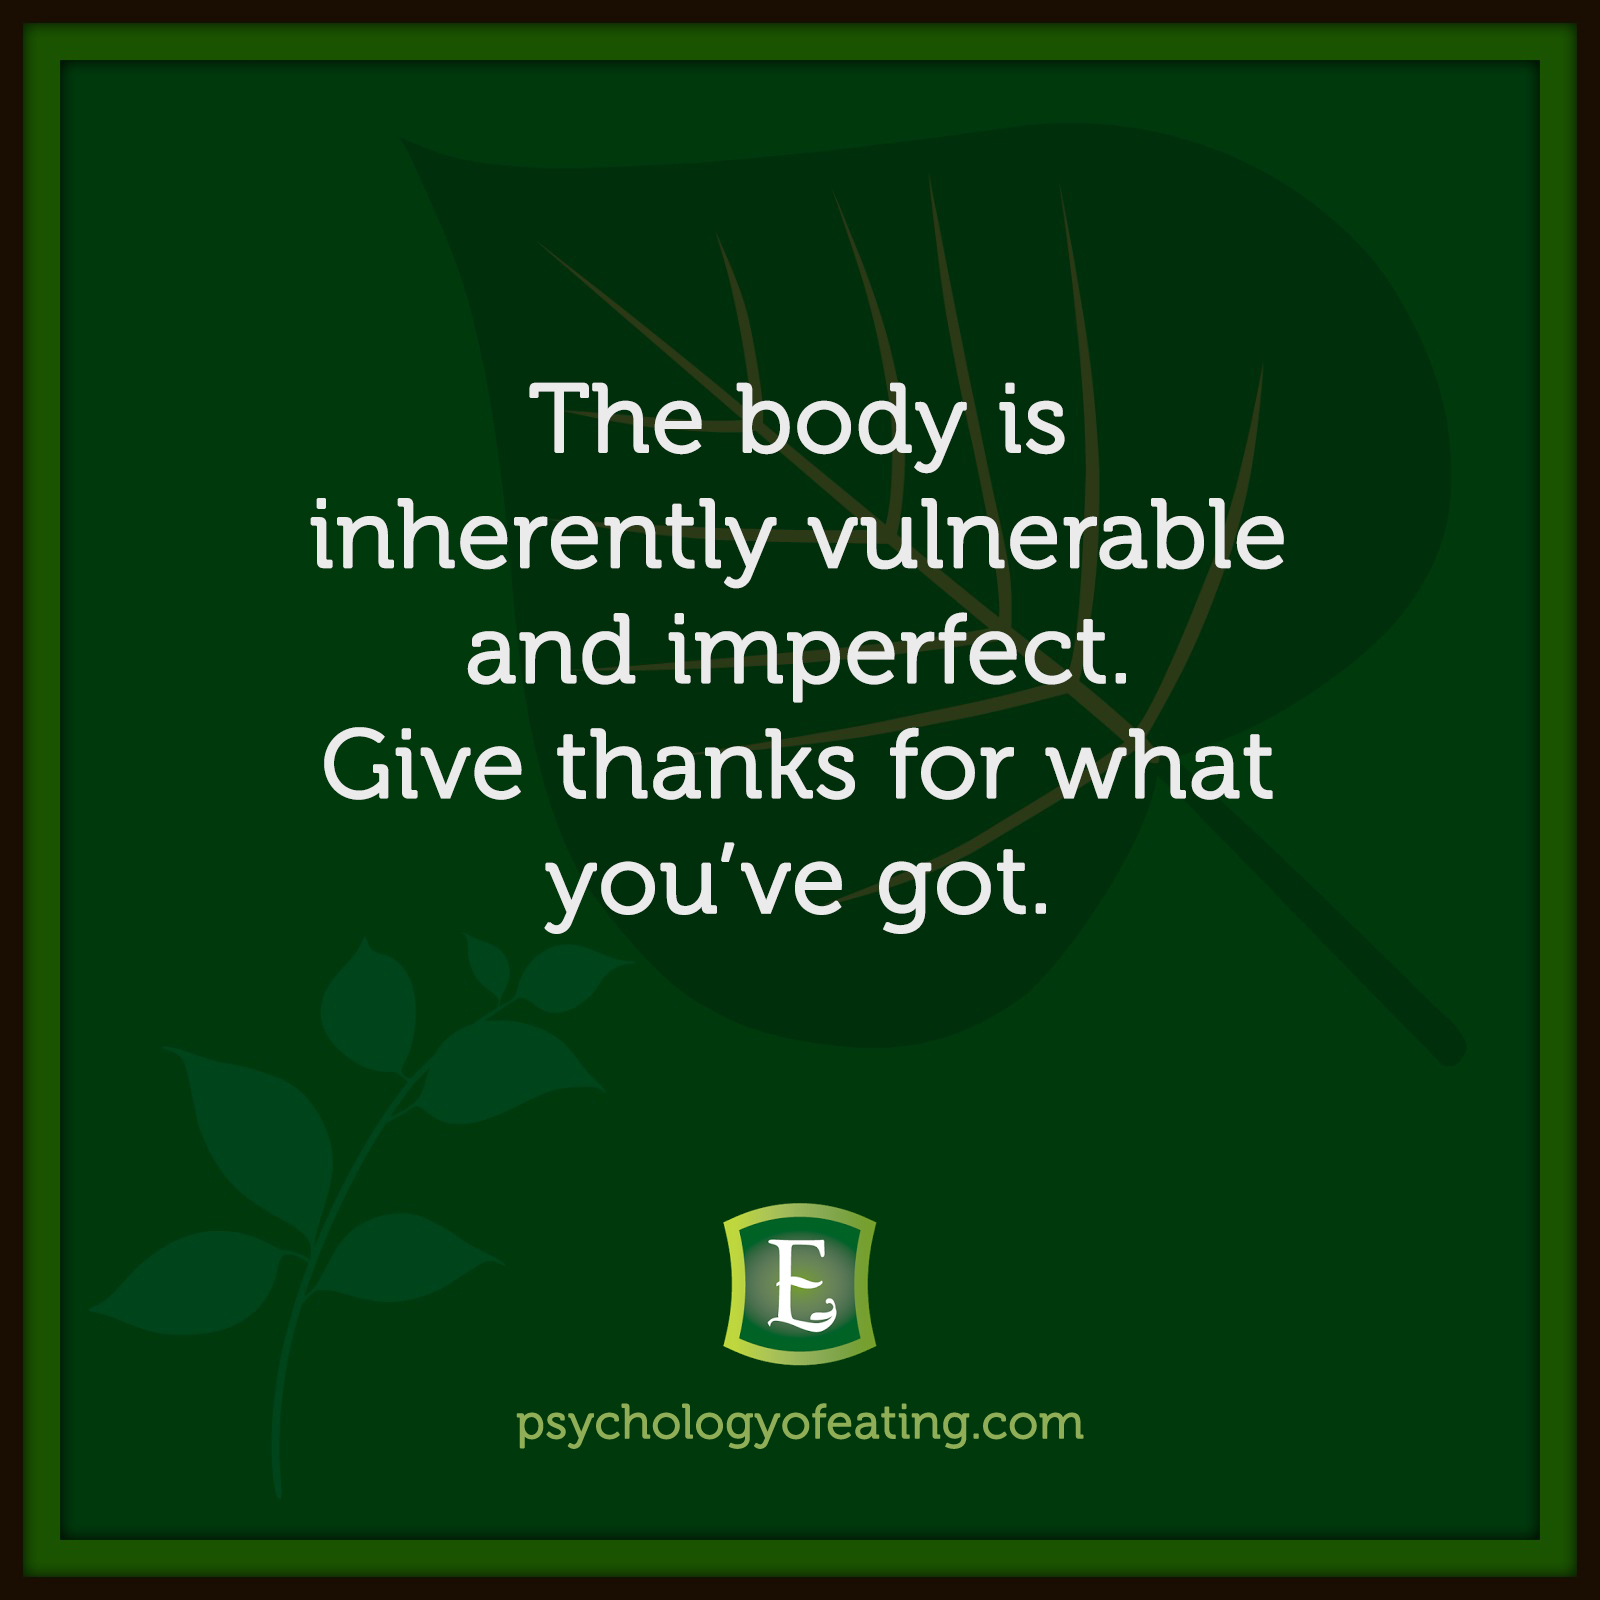 The body is inherently vulnerable and imperfect. Give thanks for what you've got. #health #nutrition #eatingpsychology #IPE